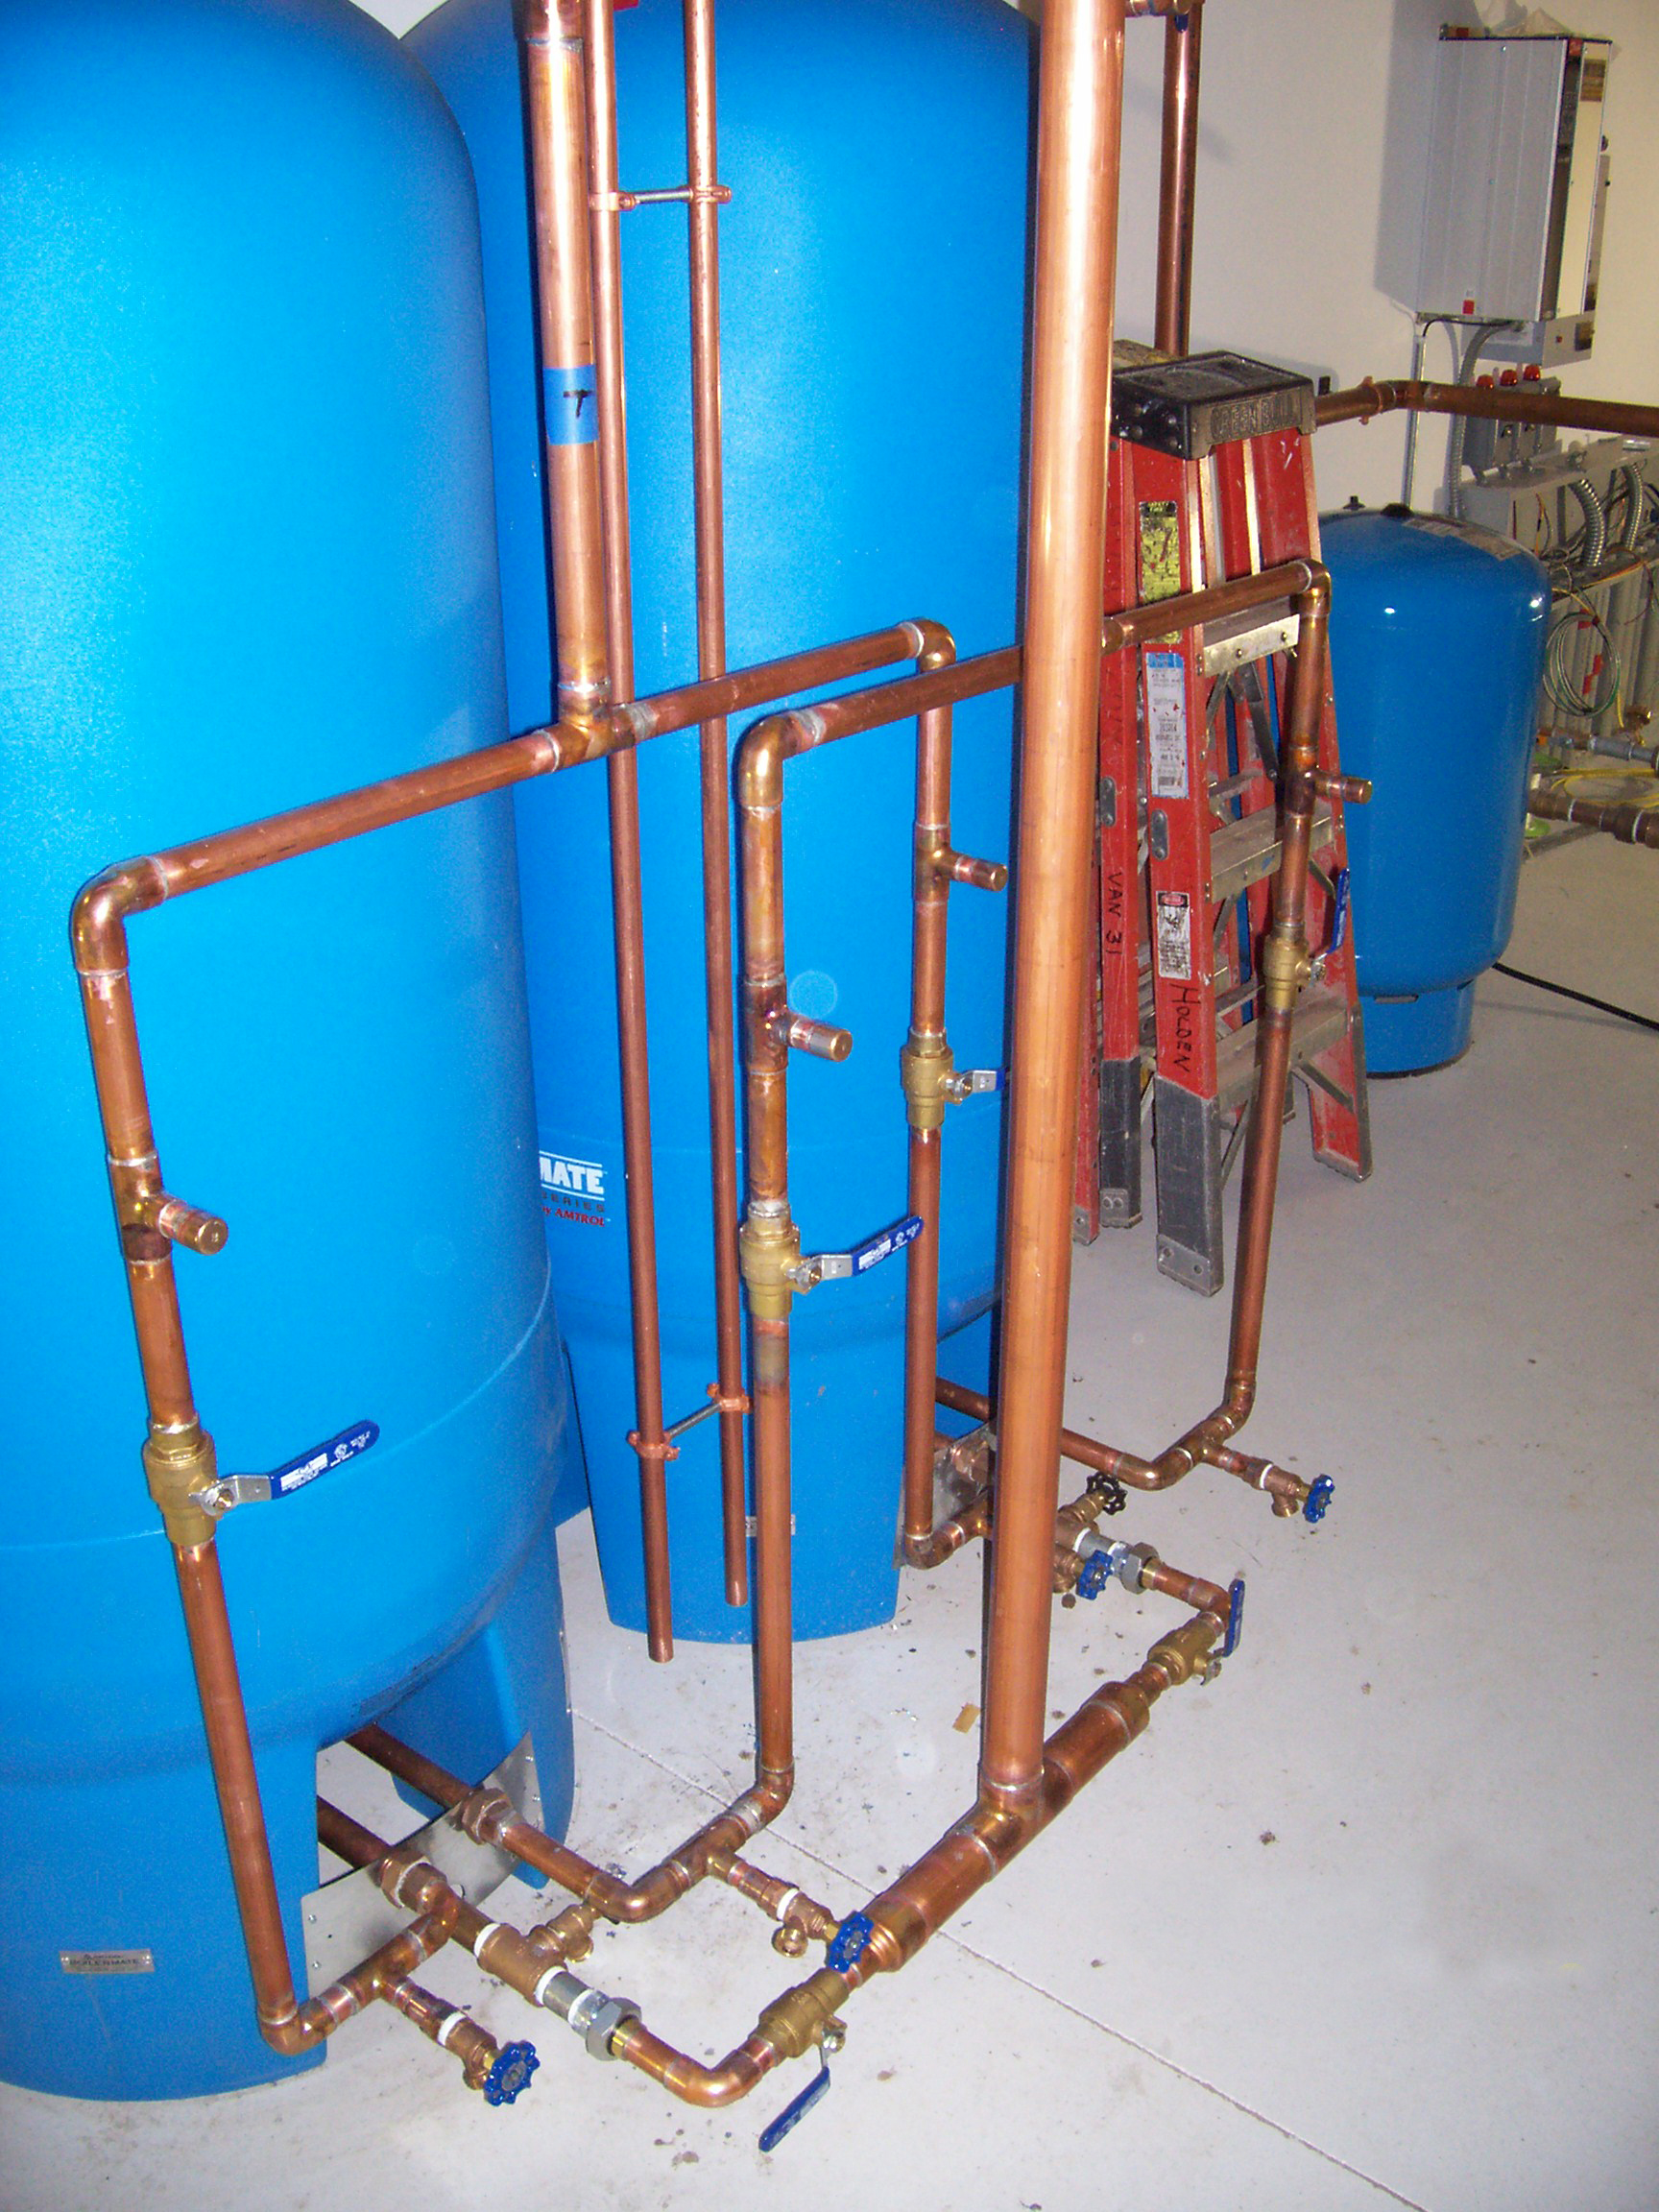 Commercial plumbing photos aitkin mn commercial plumbing for Used hot water heater